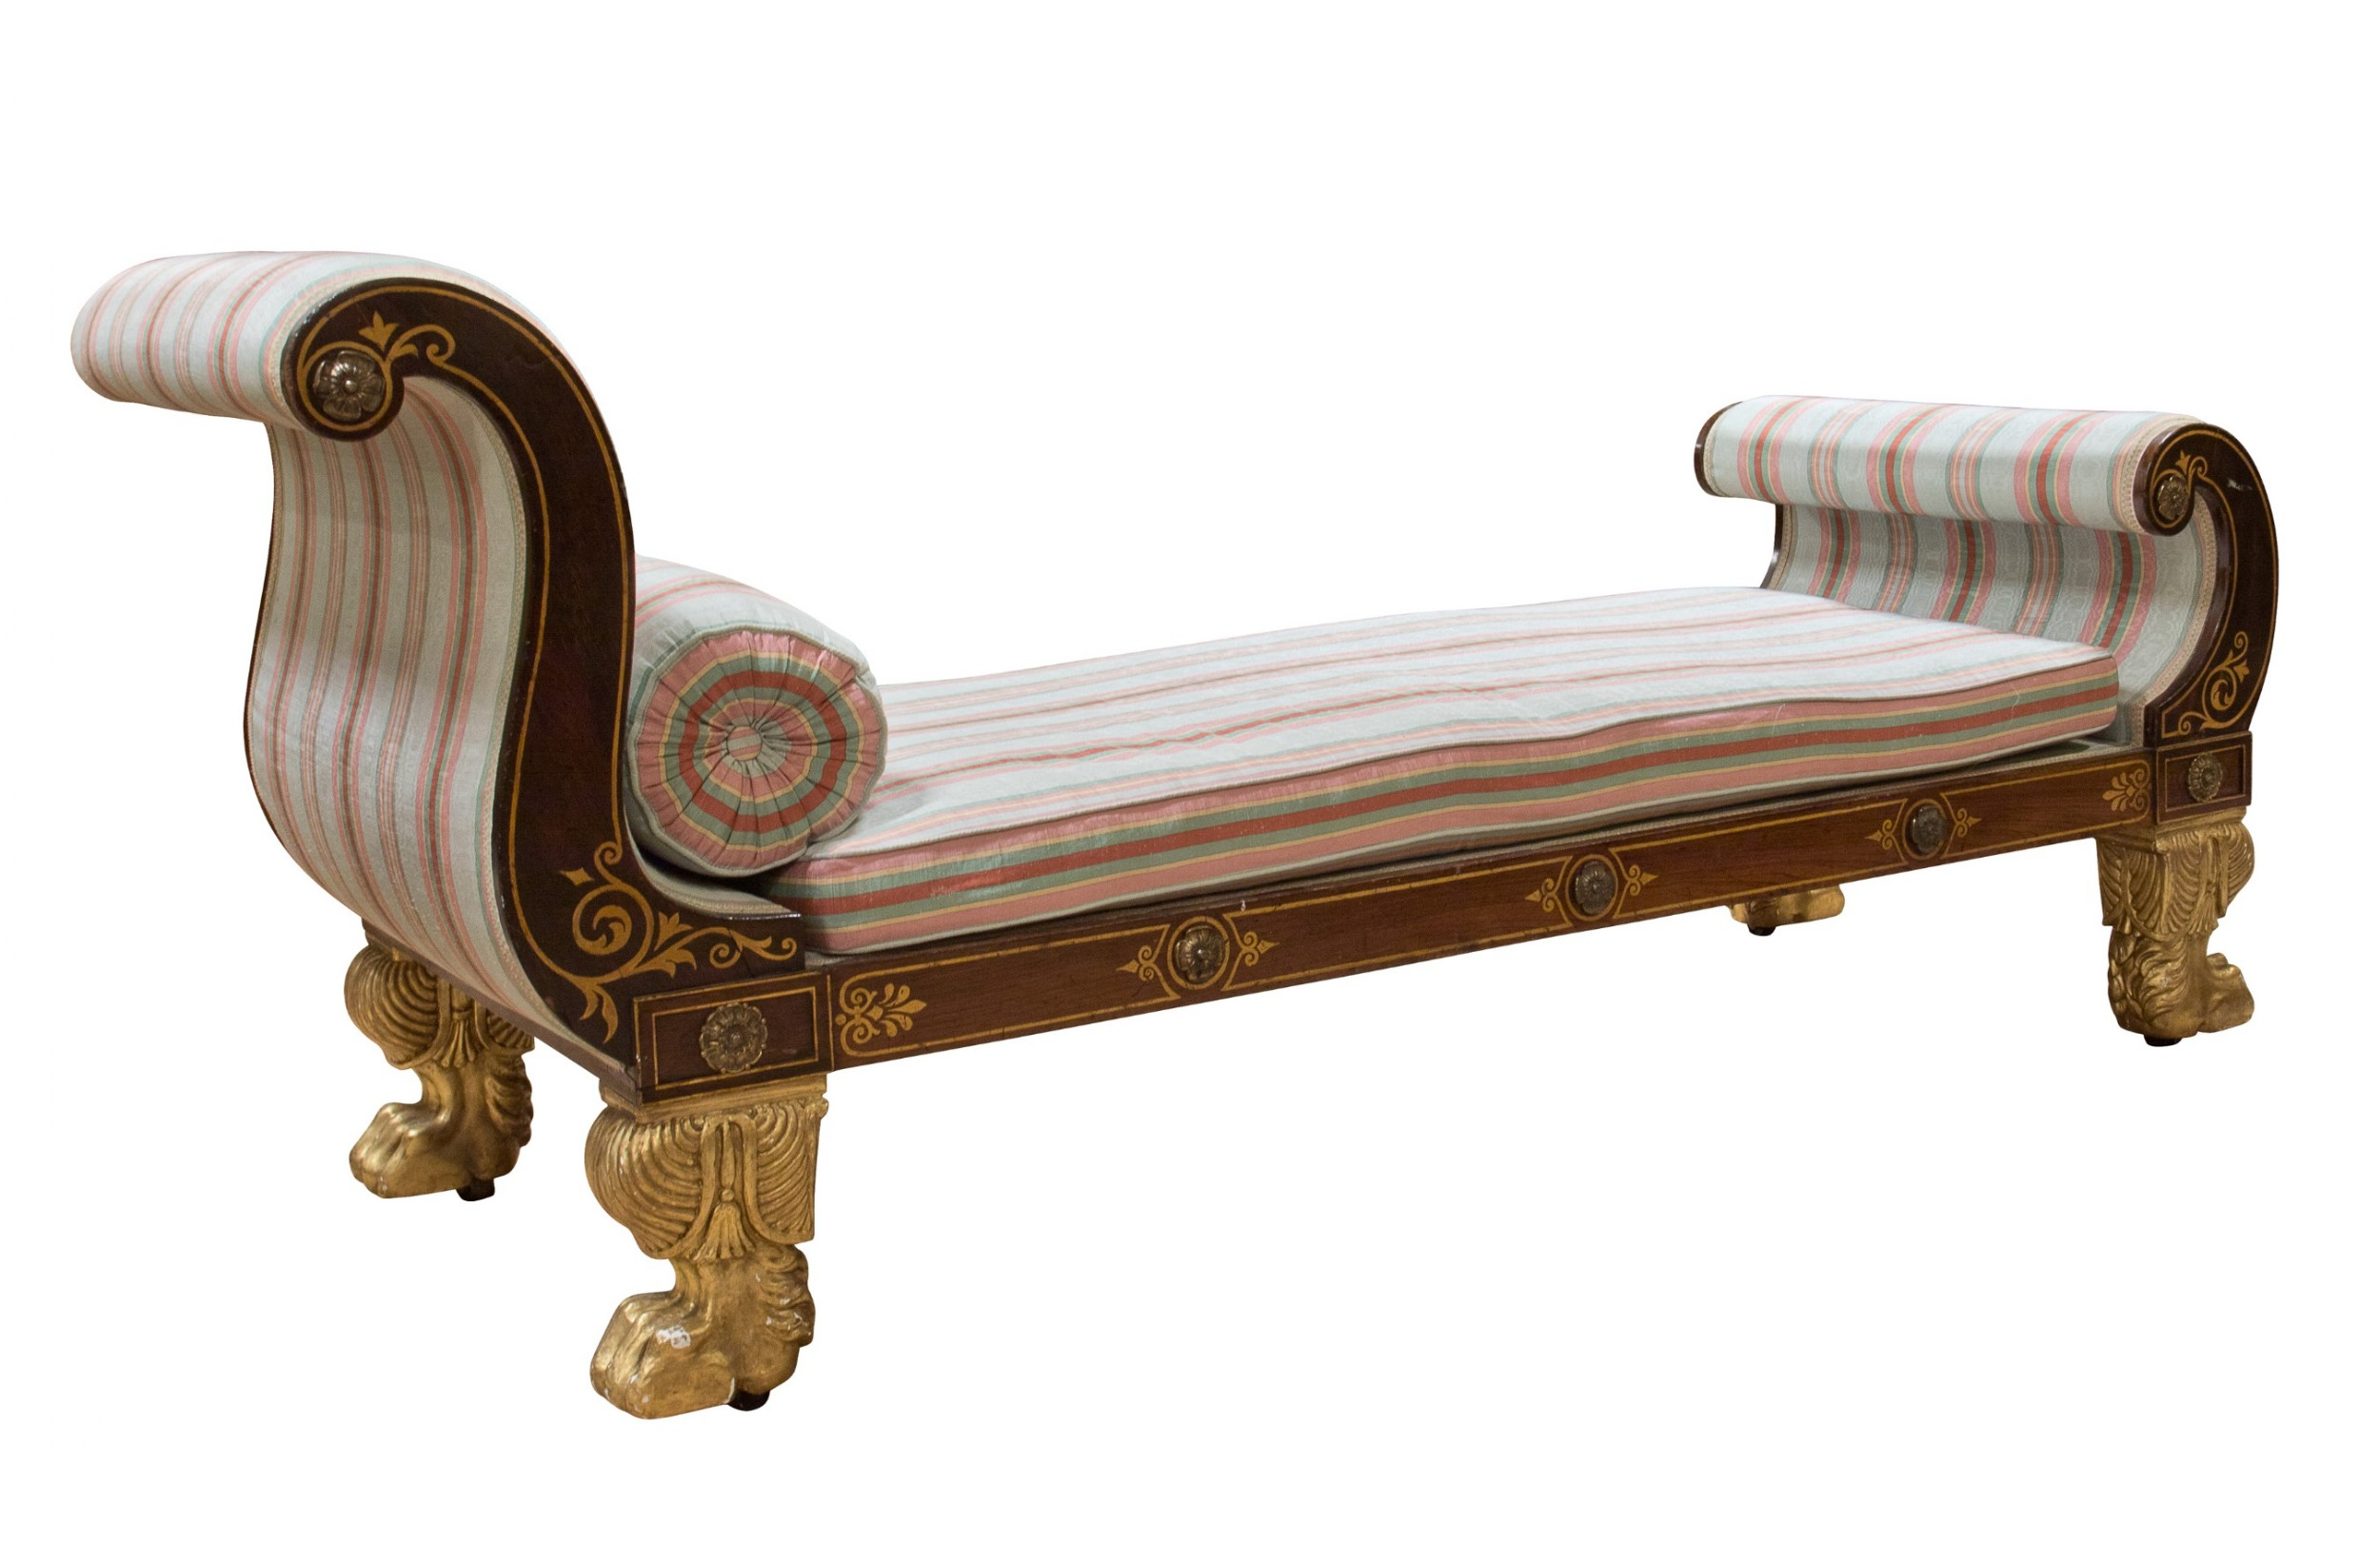 regency faux rosewood and ormolu mounted chaise longue